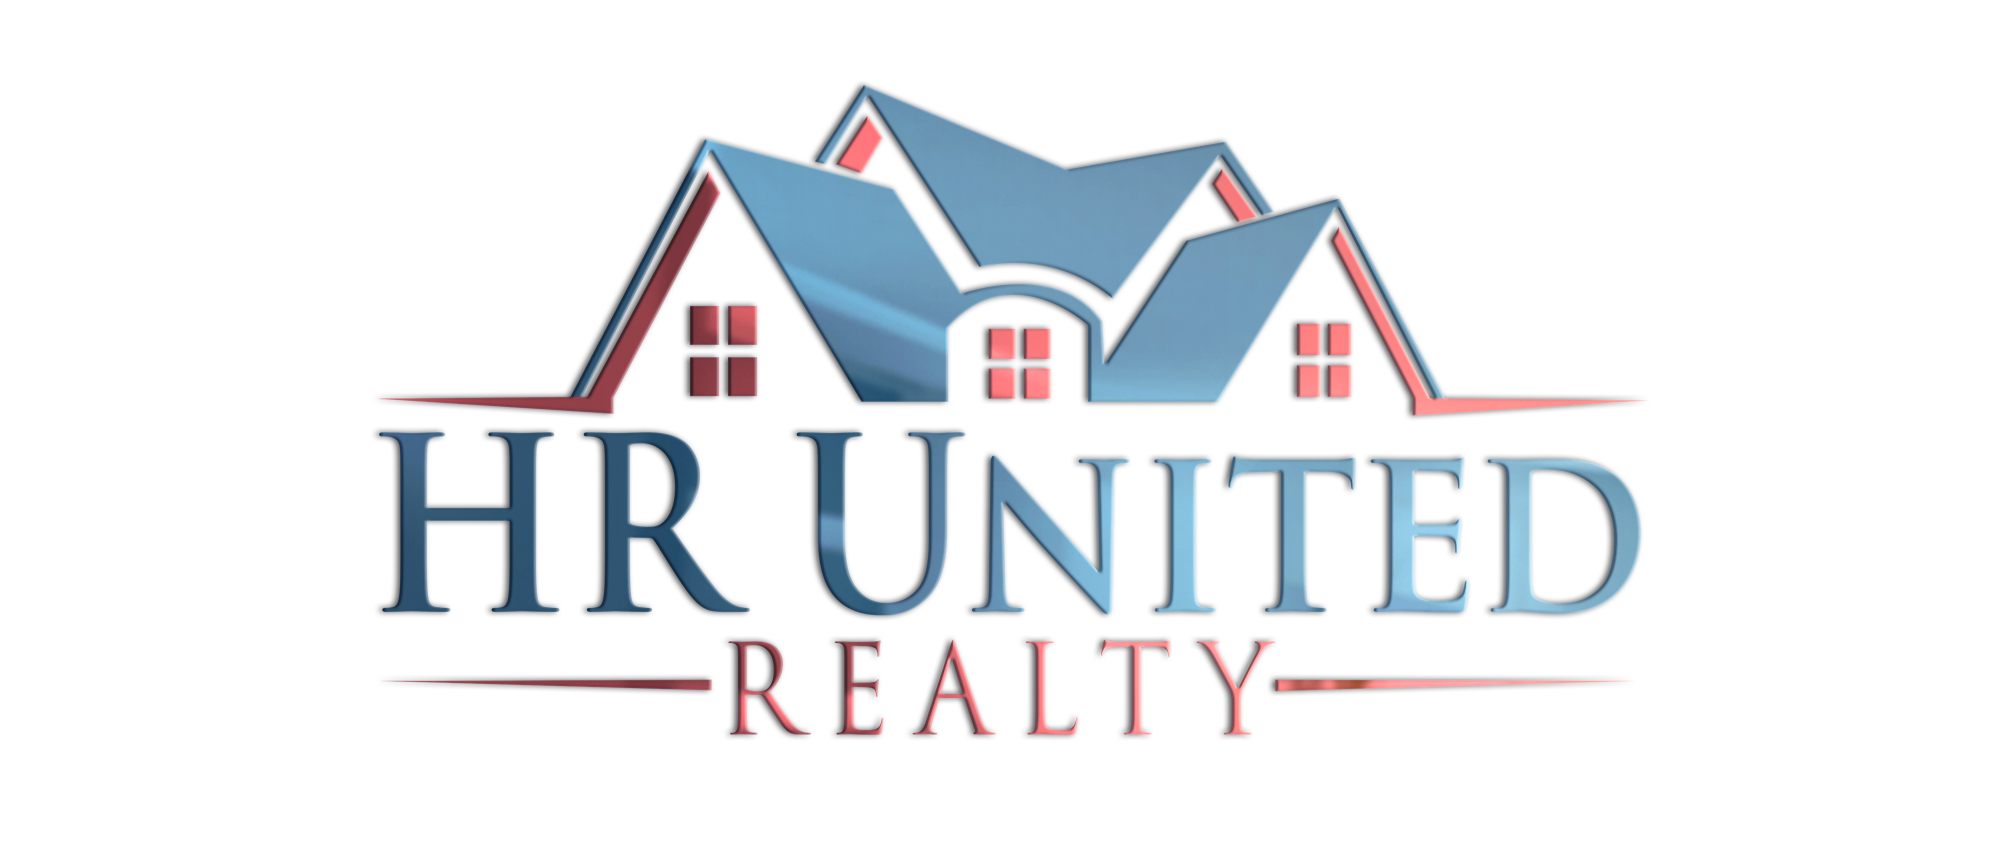 HR UNITED REALTY